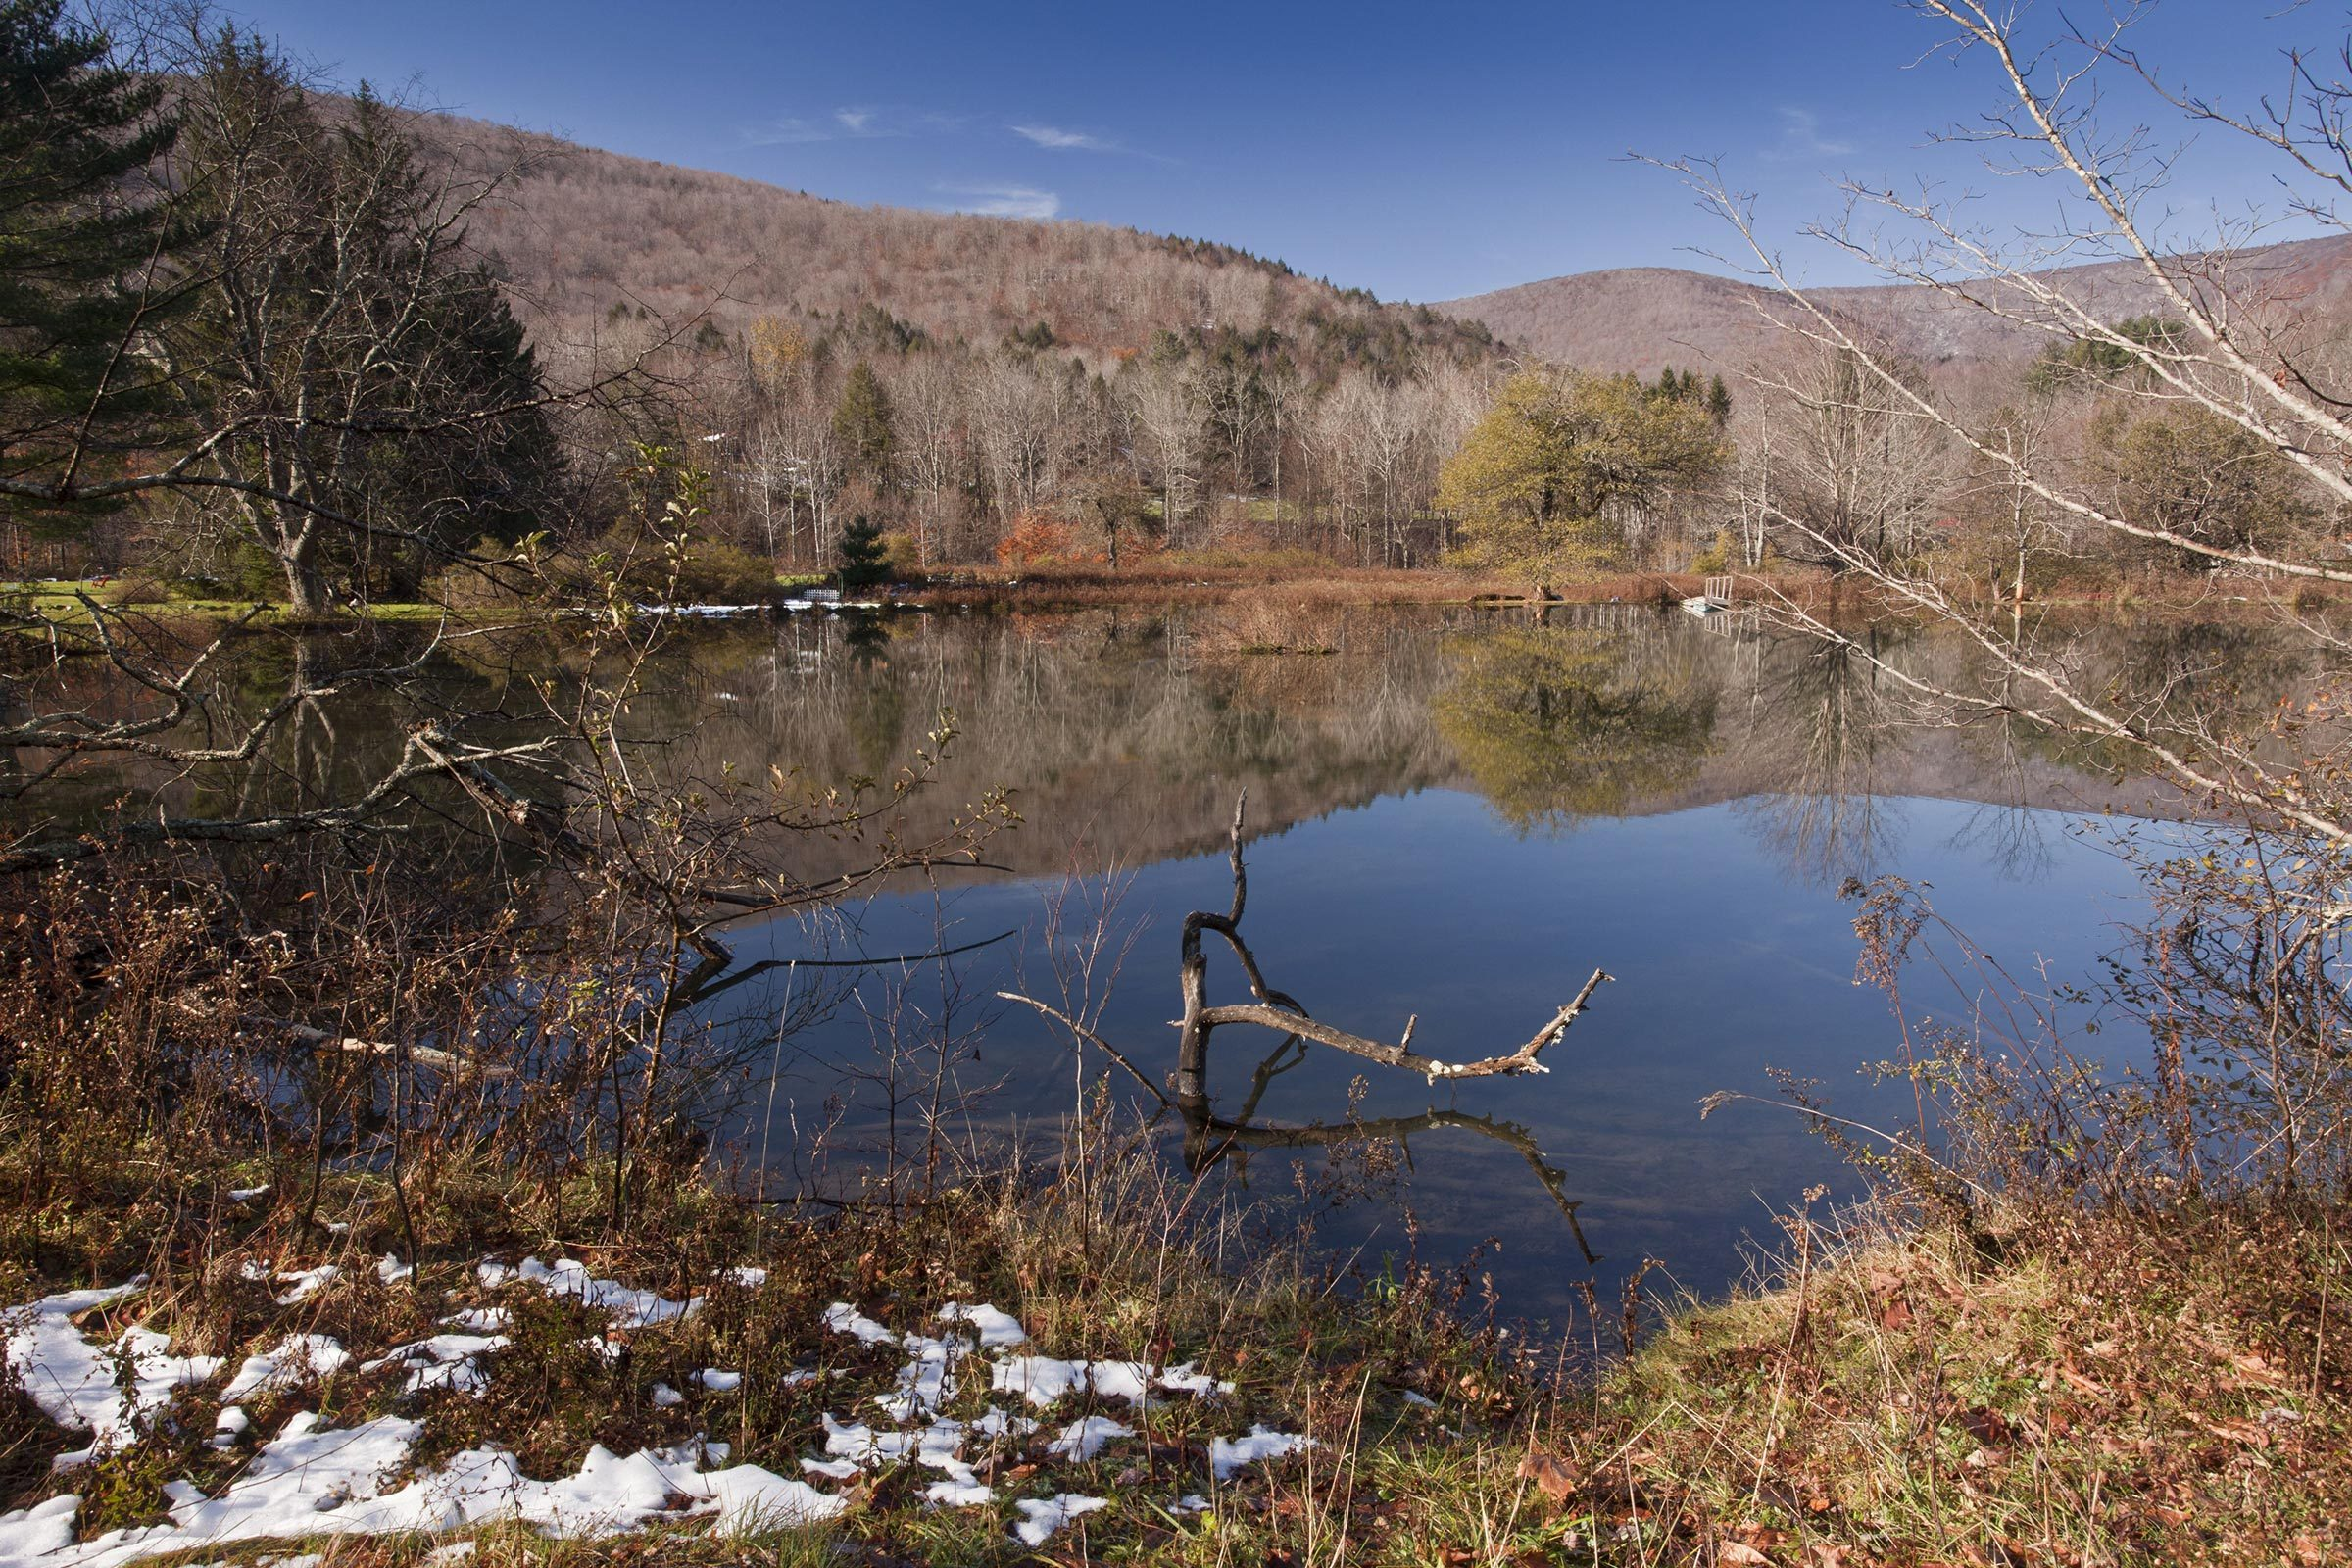 Nature Melting snow at edge of lake in woodland habitat, Oliverea, Catskill State Park, Catskill Mountains, New York State, U.S.A.